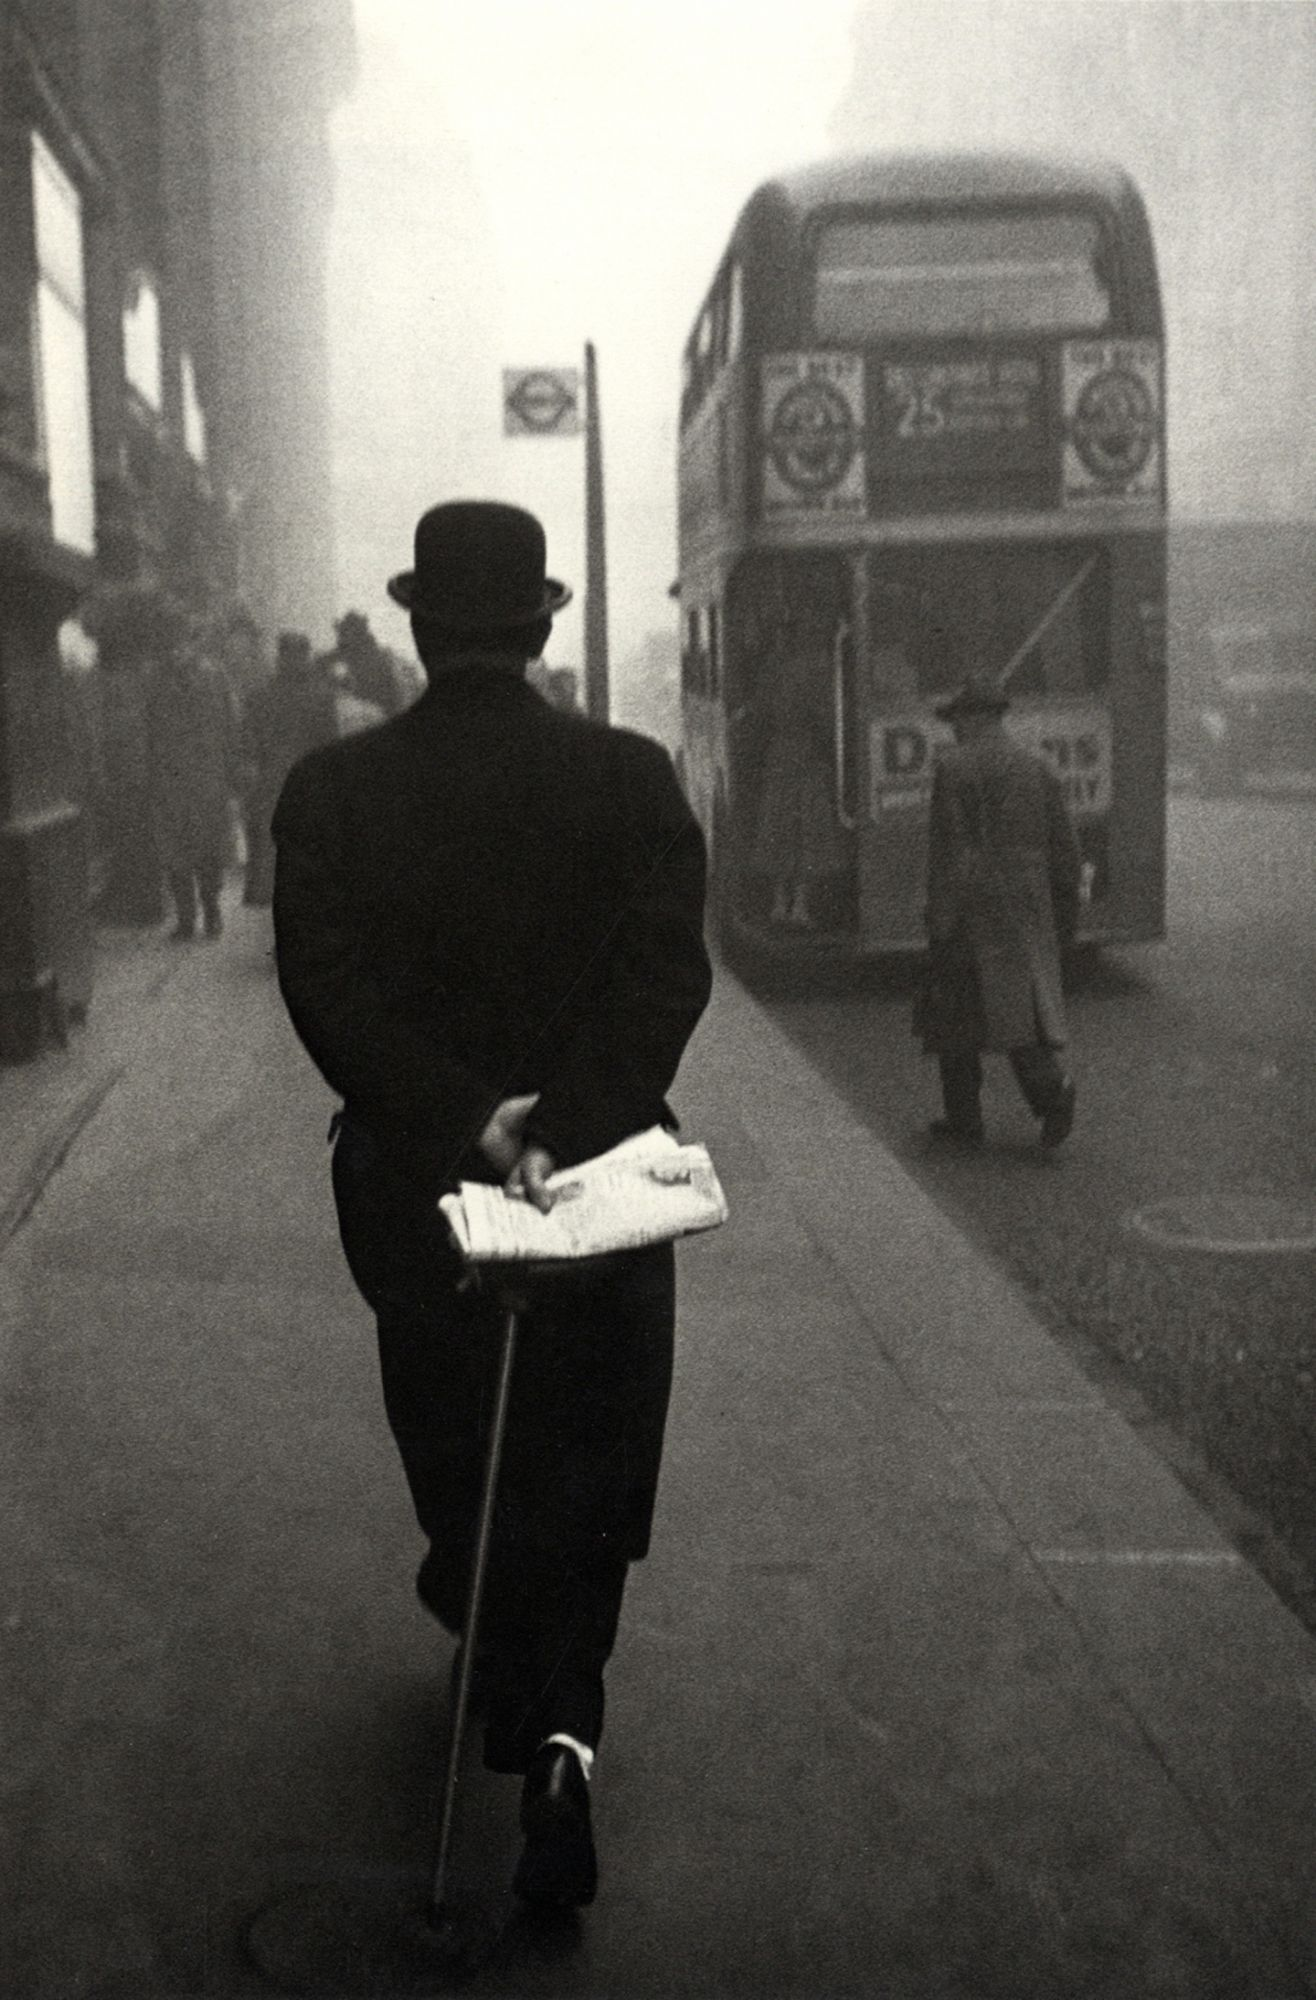 Robert Frank: Moving Out